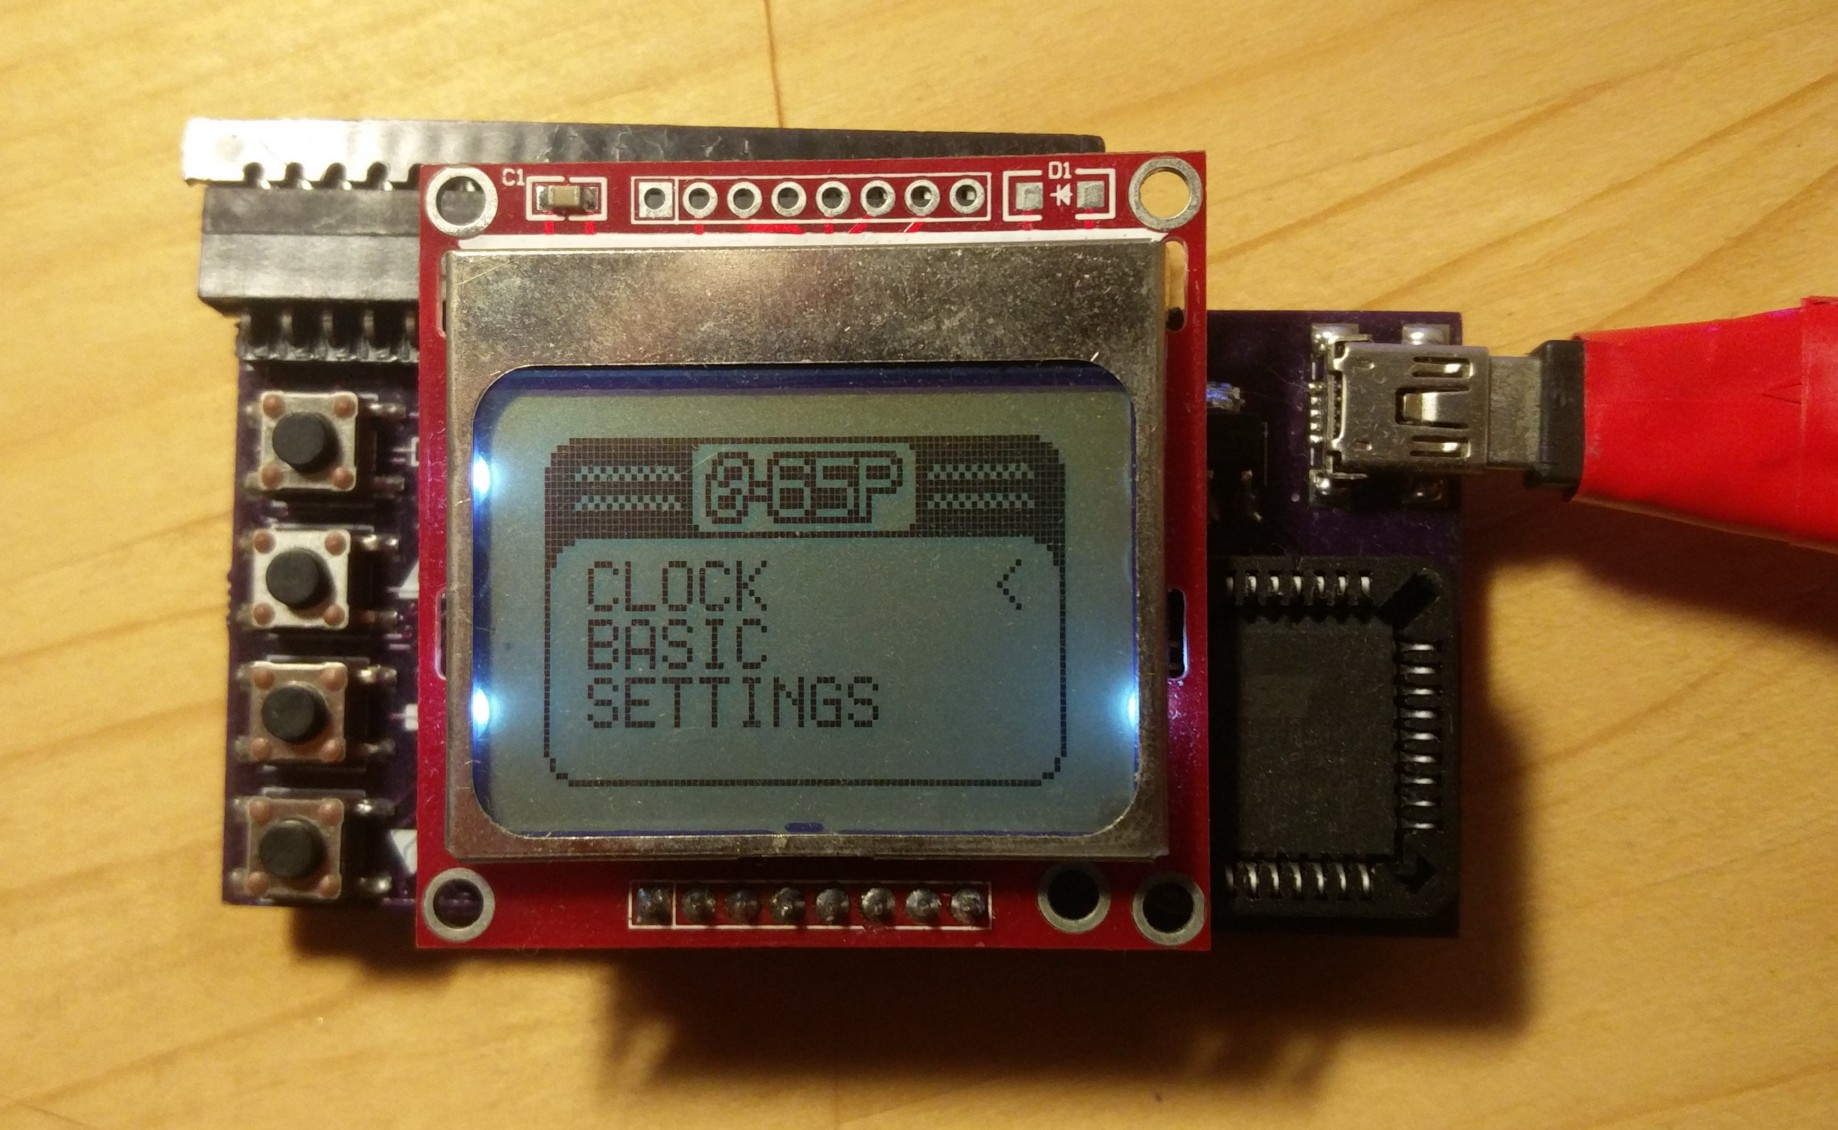 Build a Wearable Watch Using a 6502 8-Bit Microprocessor